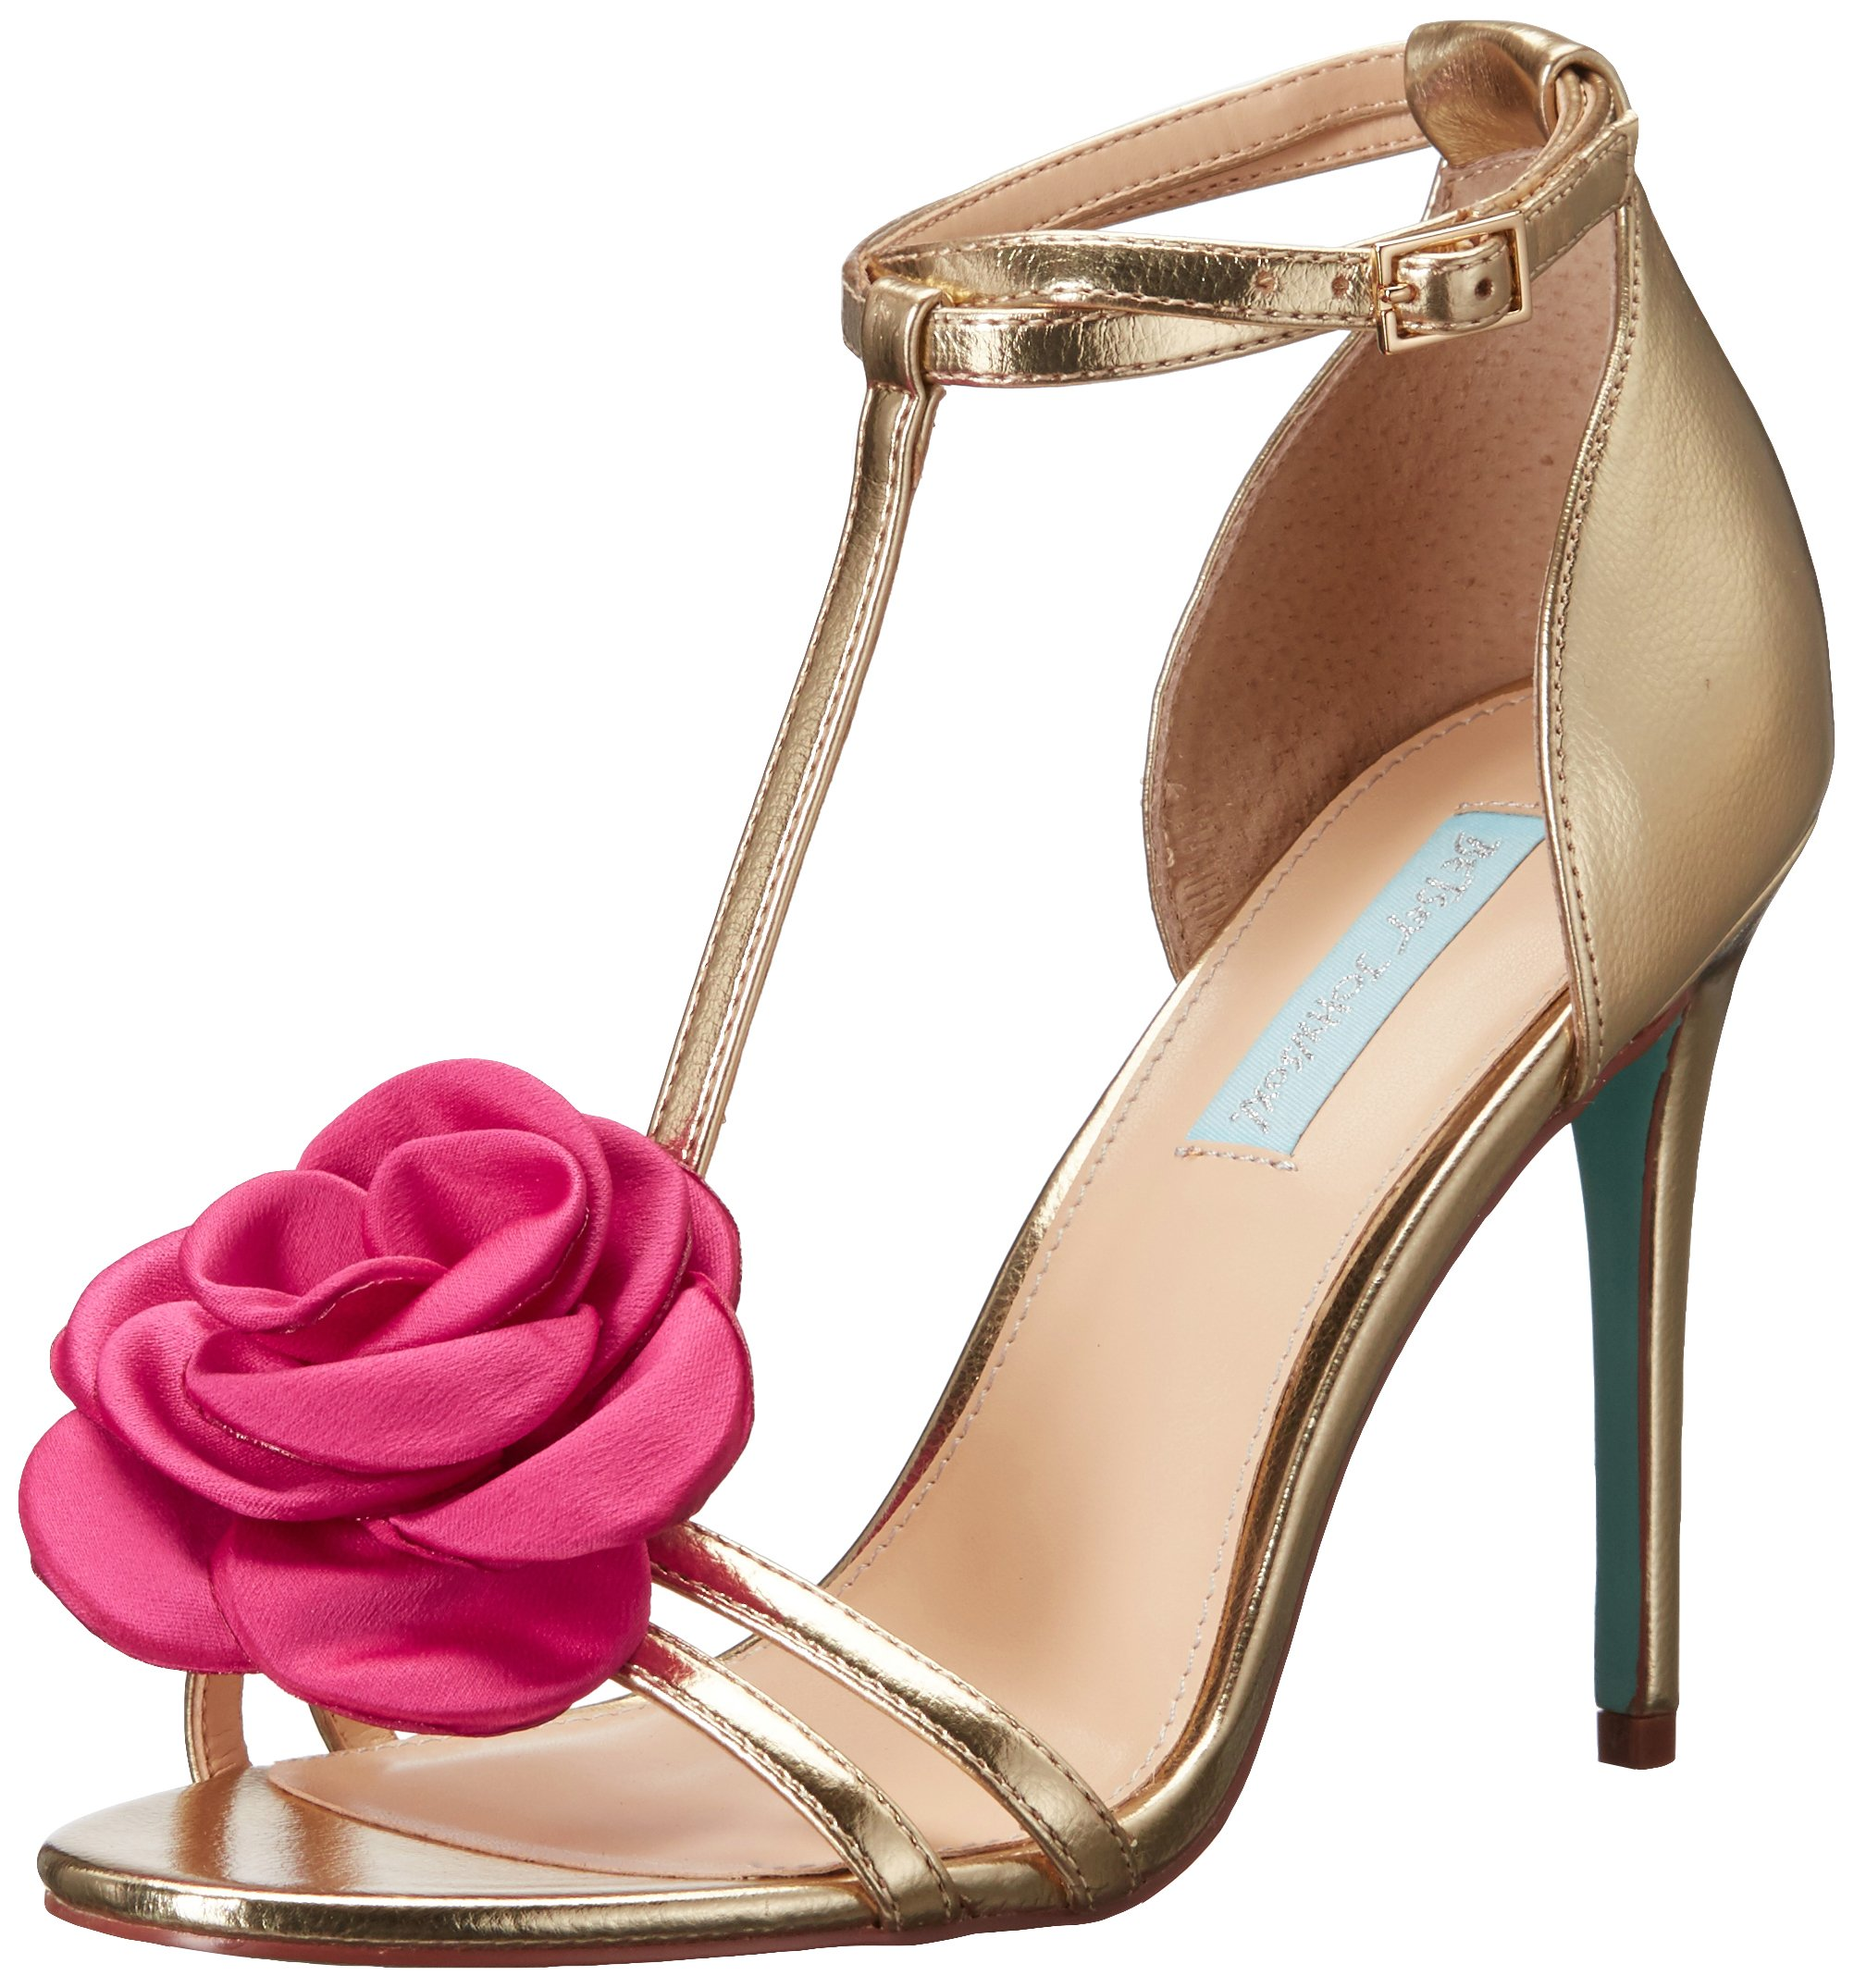 Blue by Betsey Johnson Women's SB-Emme Dress Sandal, Gold/Metallic, 7.5 M US